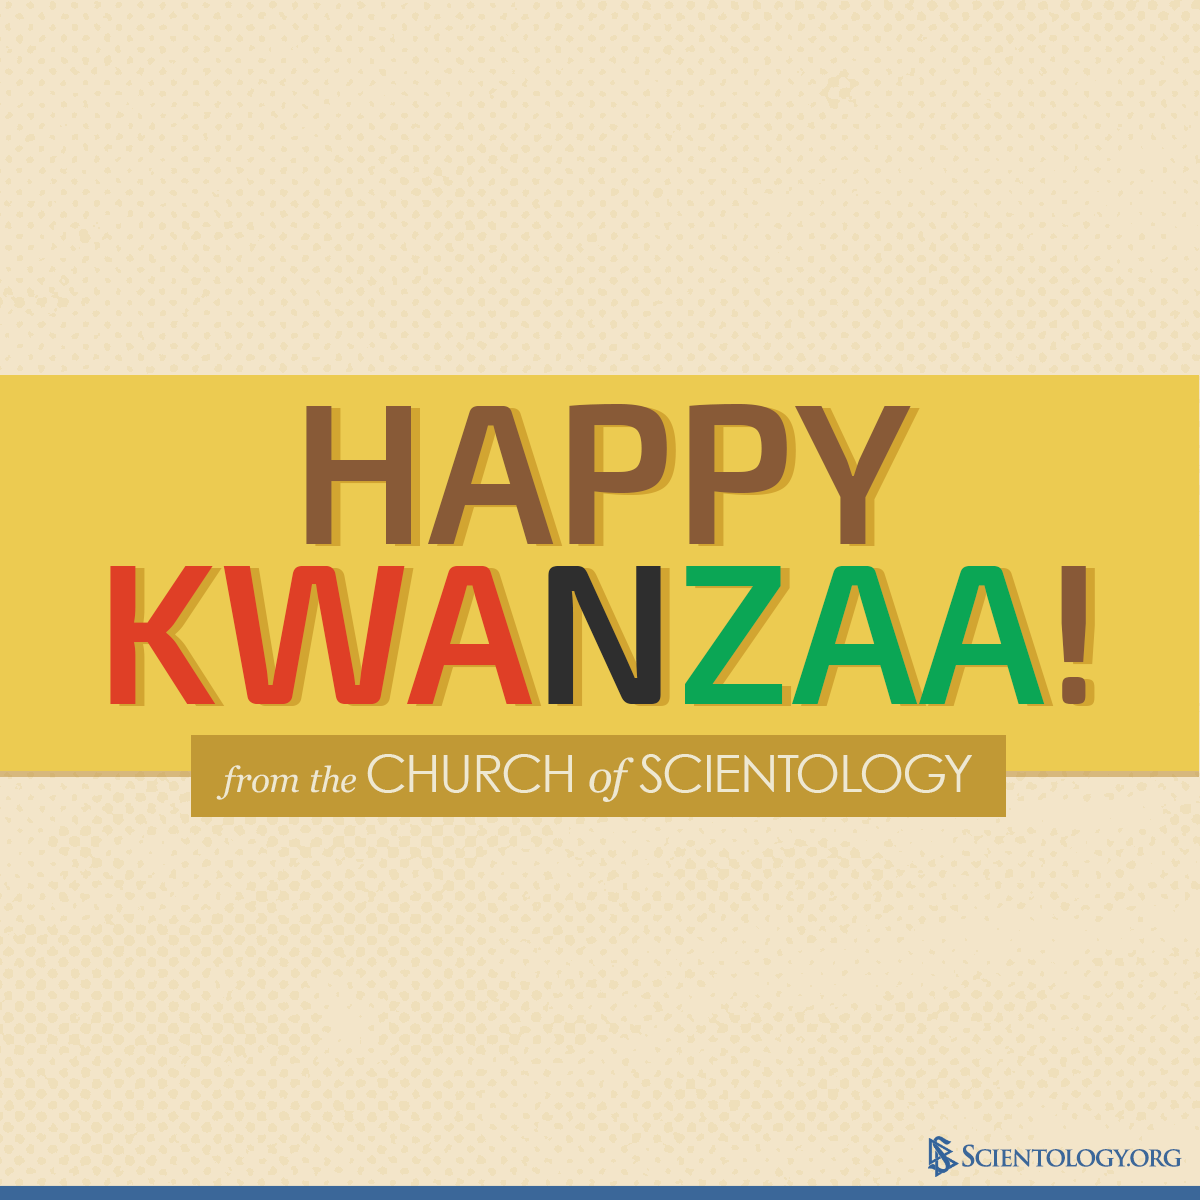 Happy Kwanzaa from the Church of Scientology. https://t.co/xwGo4TtEcW